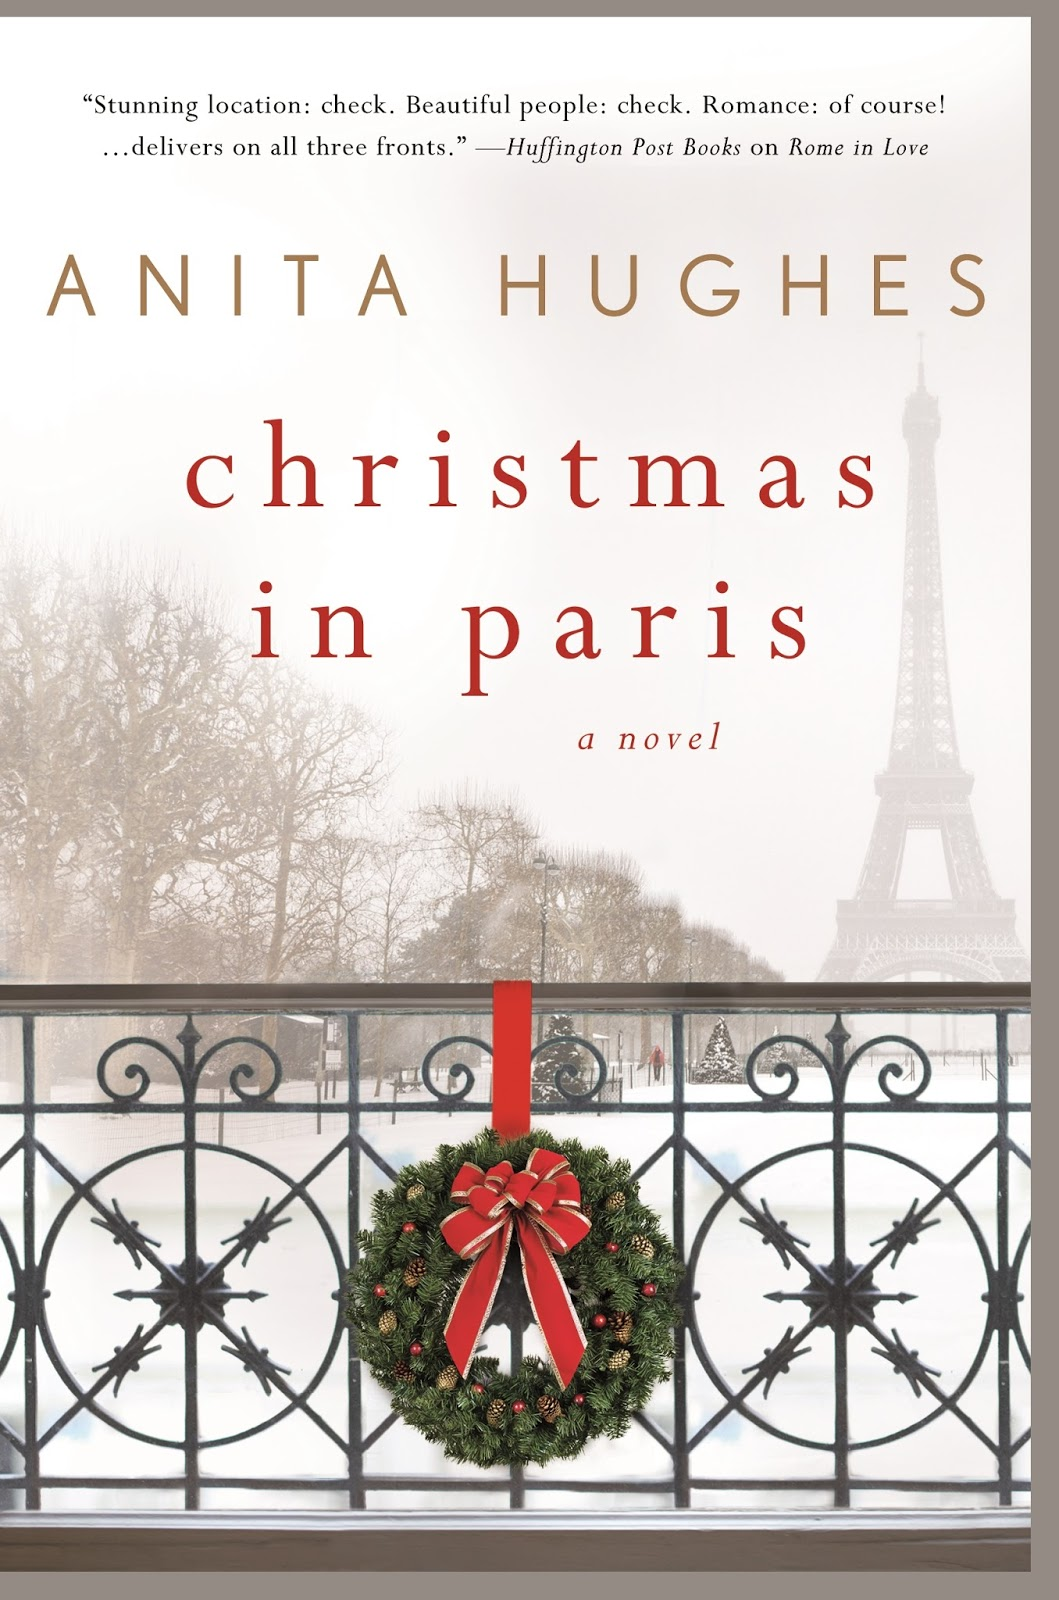 The Book Connection...: New Release: Christmas in Paris by Anita Hughes